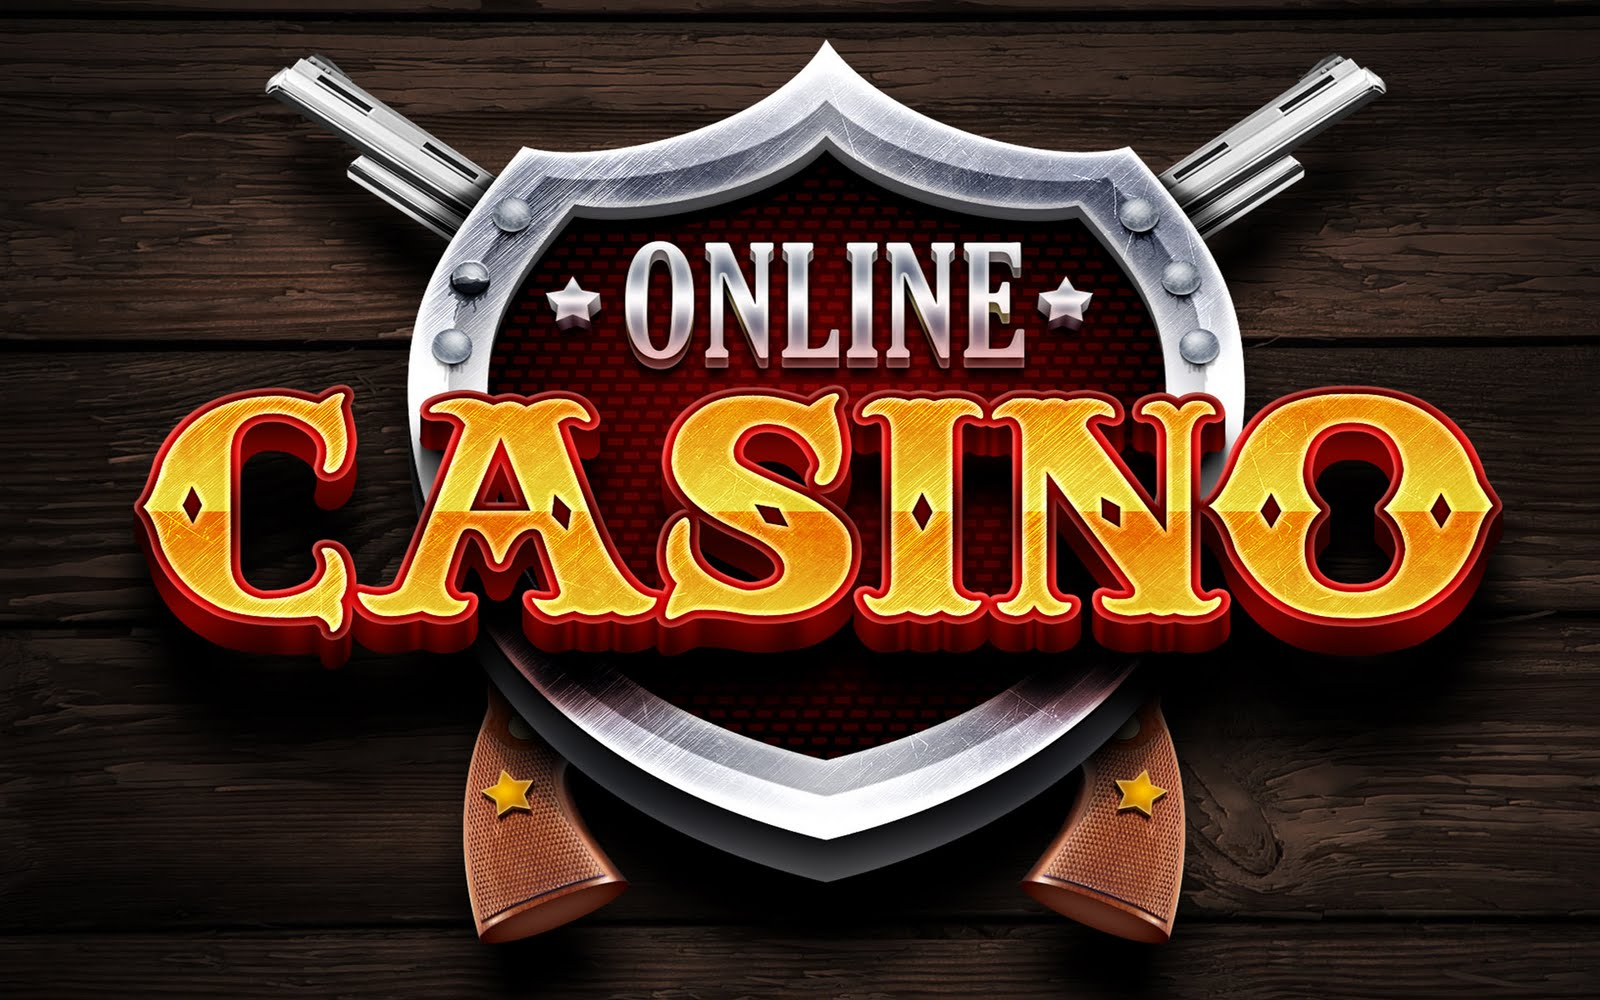 secure online casino on line casino